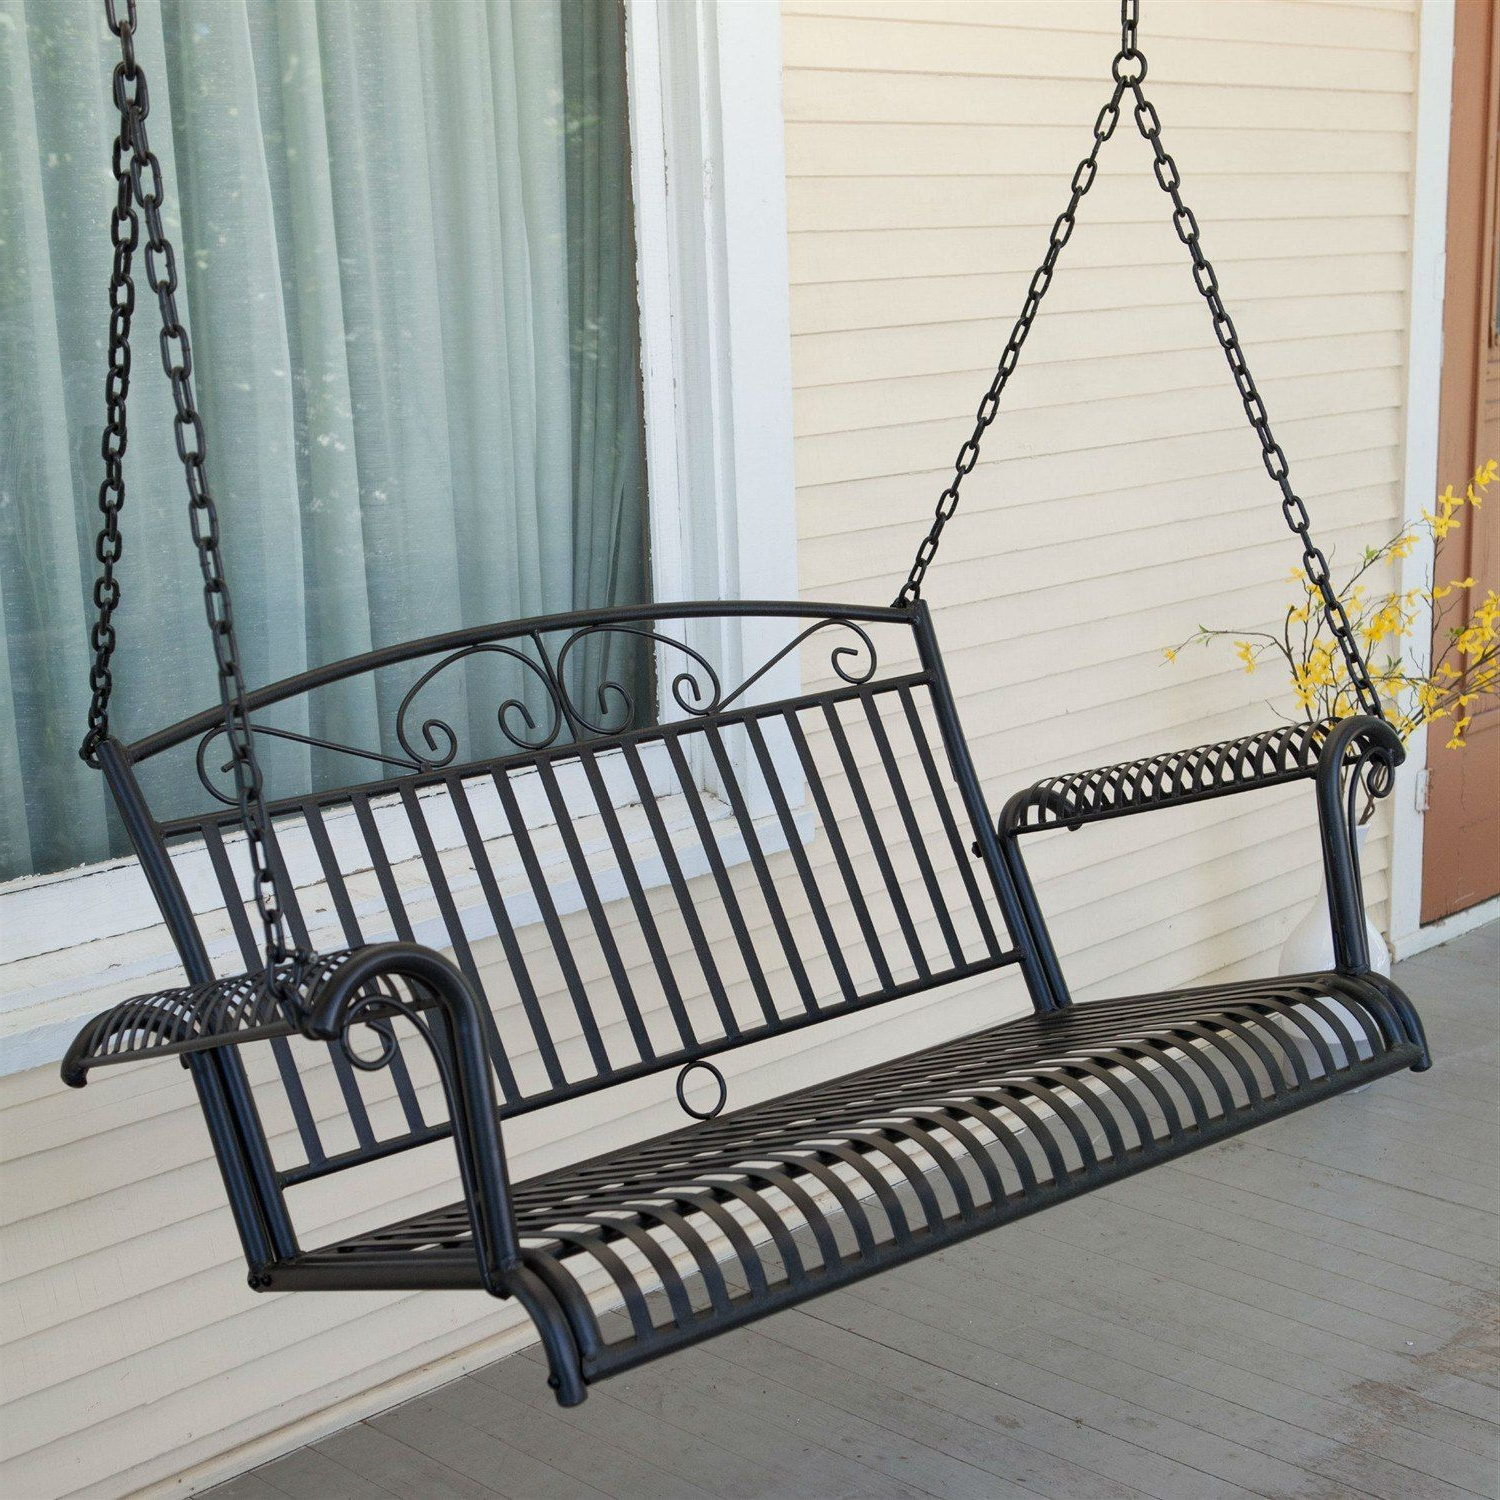 2 Person Hammered Bronze Iron Outdoor Swings For Famous Wrought Iron Outdoor Patio 4 Ft Porch Swing In Black (View 3 of 25)